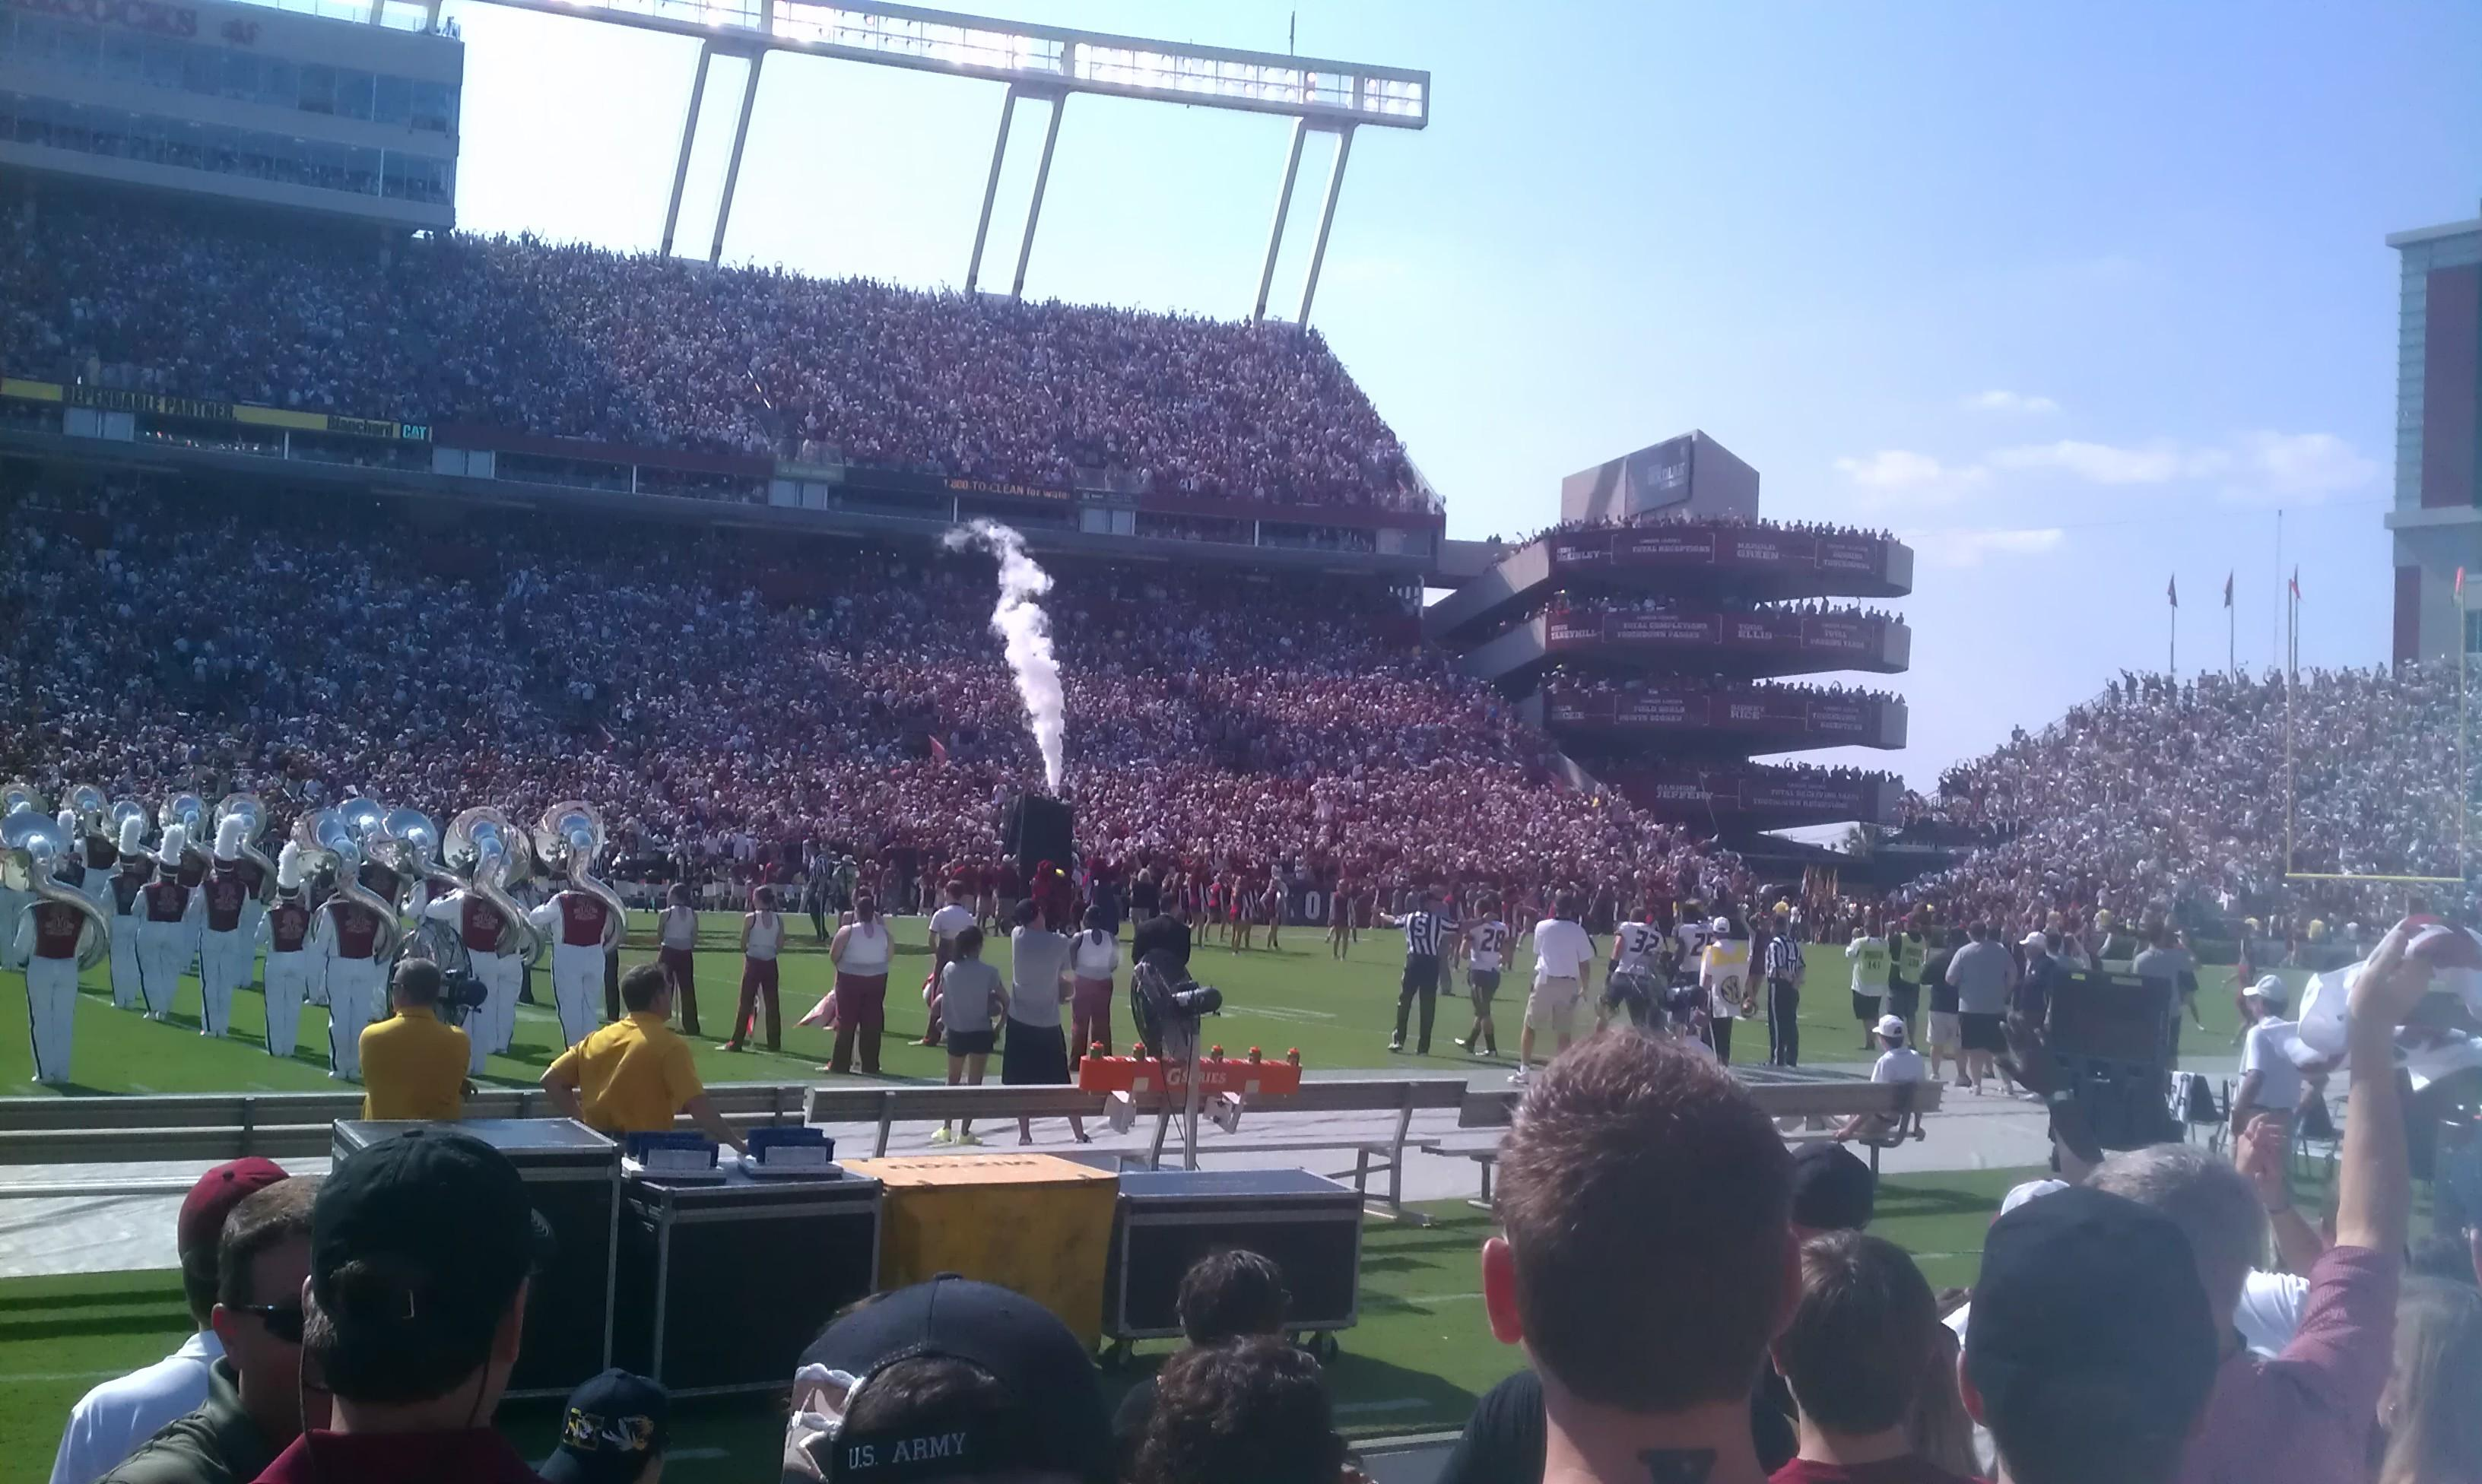 View from Row A6 in Section 20 at Williams Brice Stadium